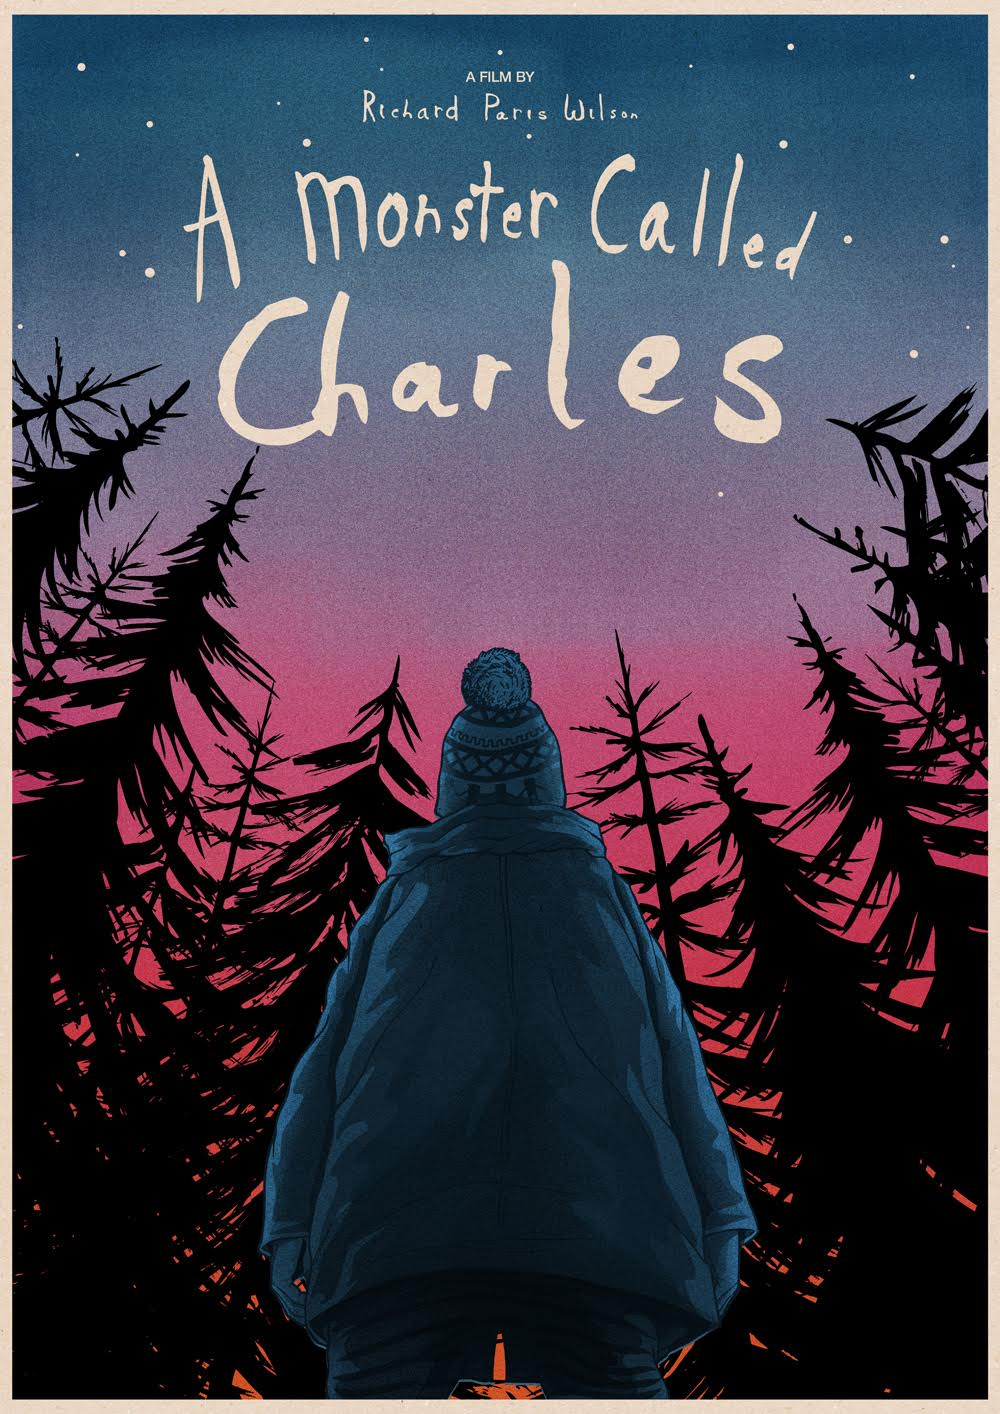 Proud to have the amazing Matthew Griffin create the poster for my short film 'A Monster Called Charles'